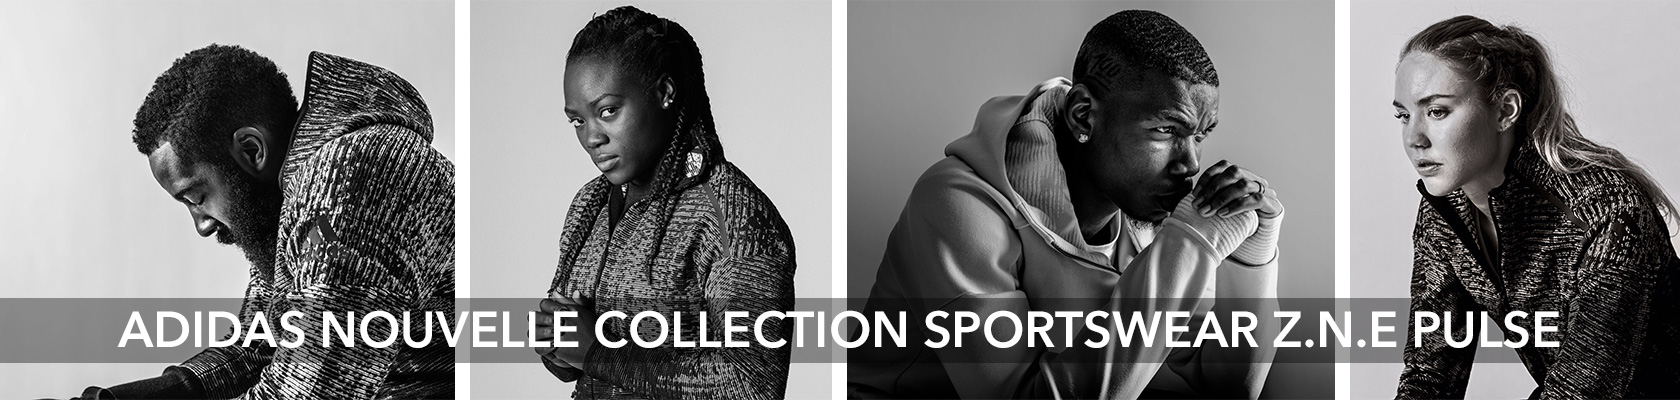 ADIDAS DÉVOILE SA NOUVELLE COLLECTION SPORTSWEAR ZNE PULSE